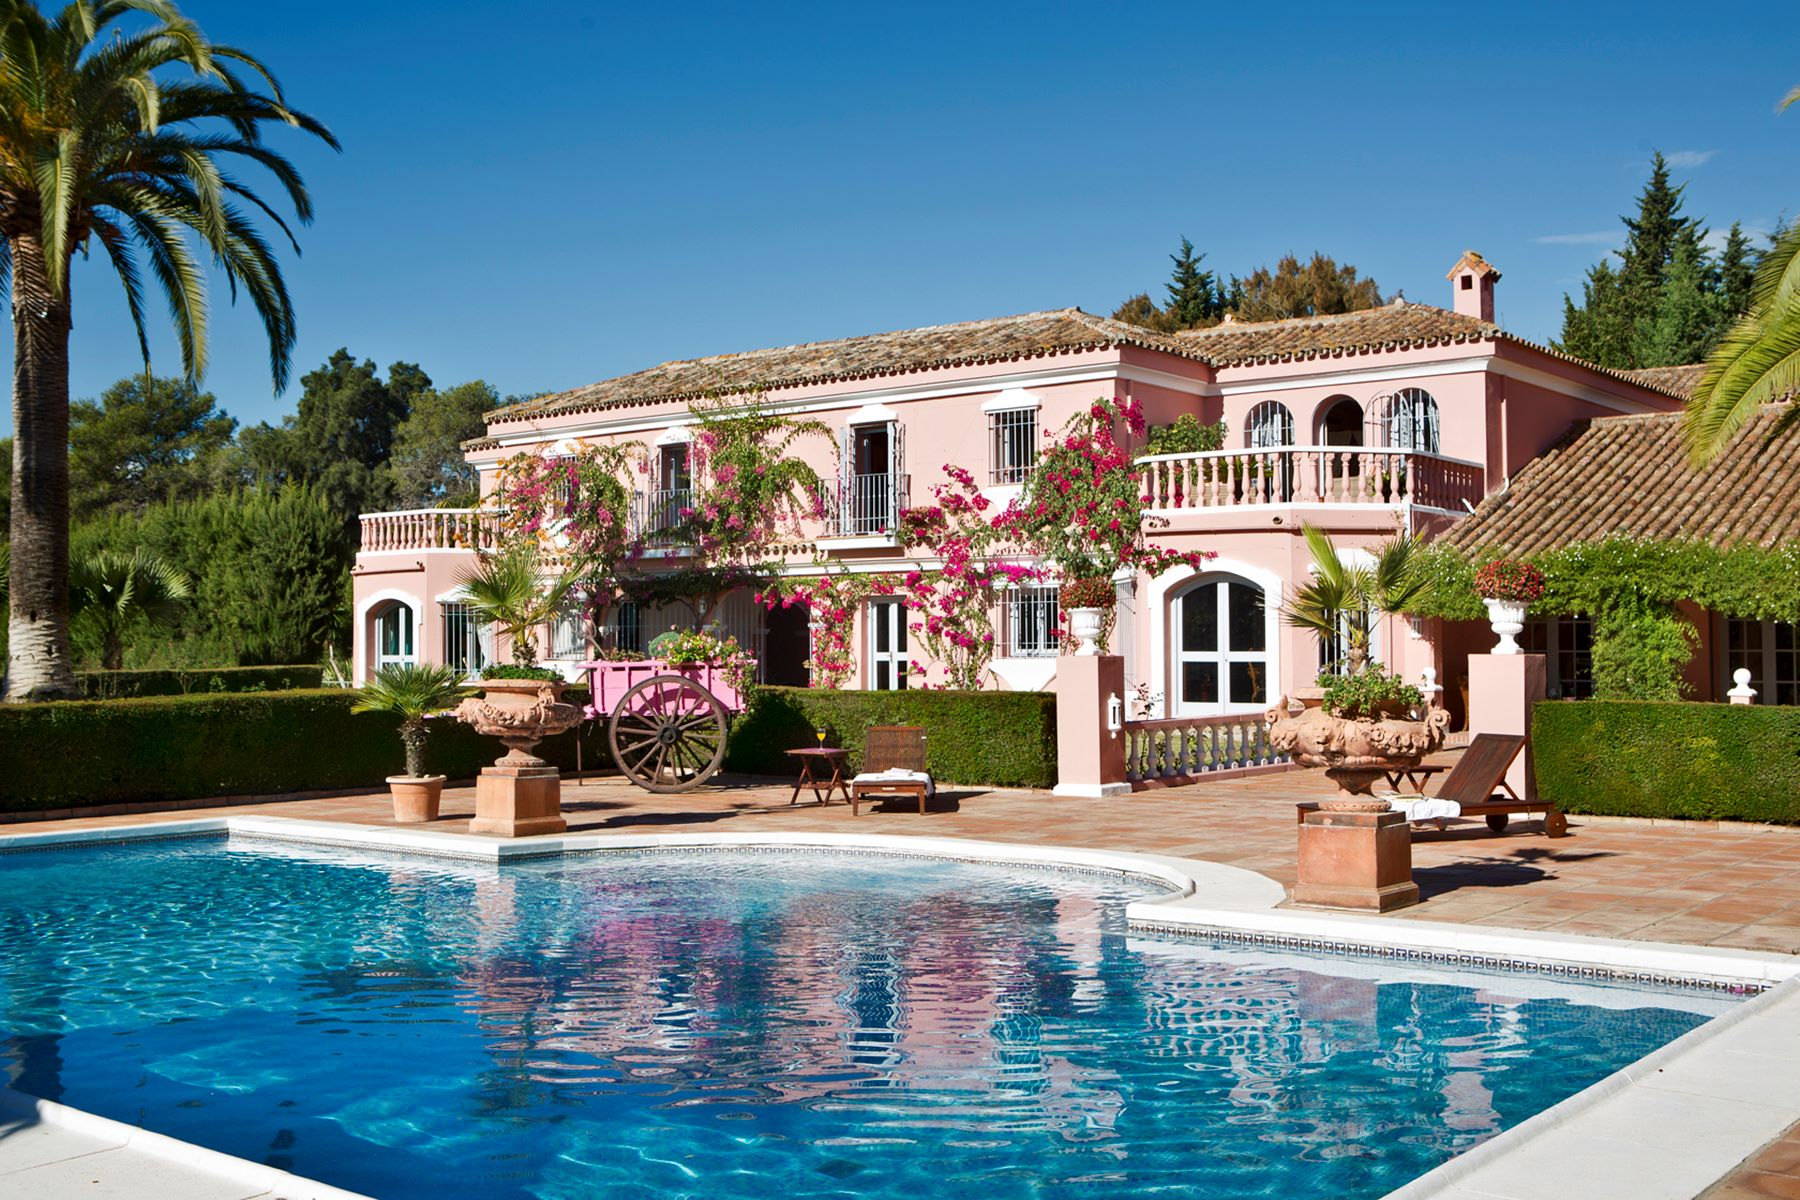 Single Family Home for Sale at A beautiful Andalusia cortijo in Sotogrande Costa Other Spain, Other Areas In Spain, 11310 Spain